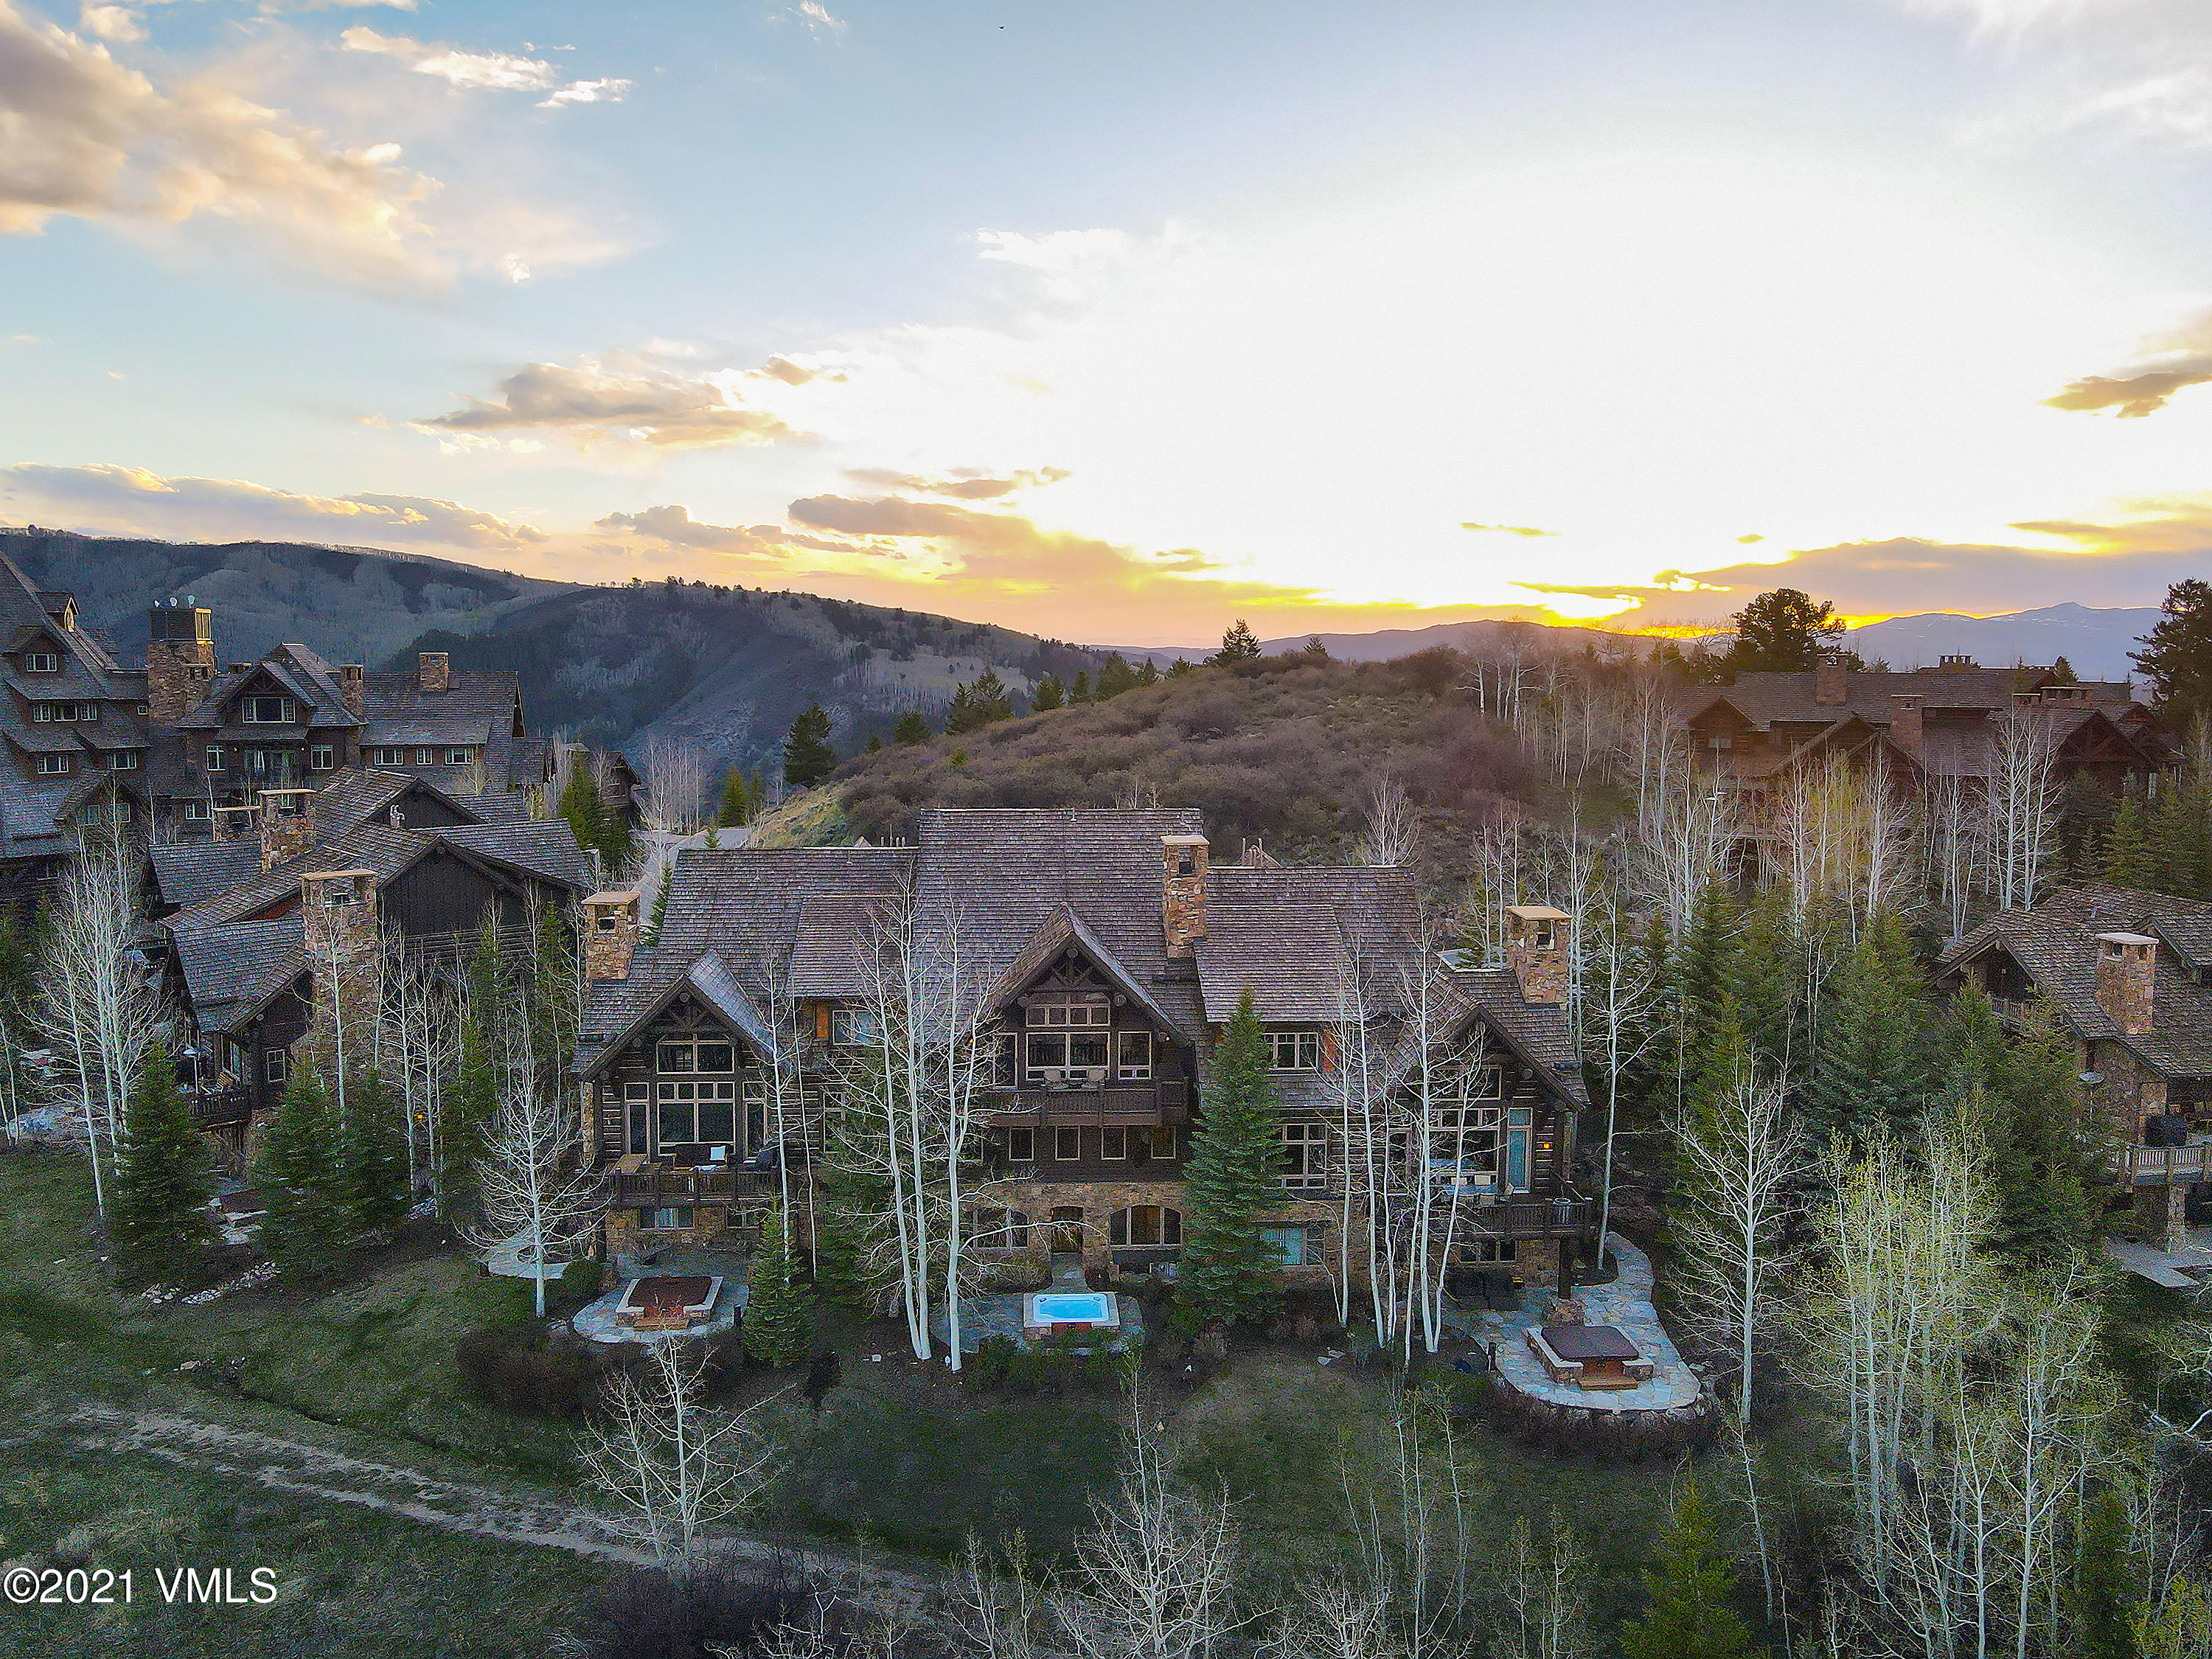 Stunning views of the magnificent Gore Range and ski slopes of Game Creek and Blue Sky Basin are framed from the Great Room and Kitchen along with every bedroom of this fully customized and meticulously cared for home. One of only 3 Horizon Pass Townhomes with Gore Range views and offering sublime ski-in and ski-out directly to and from the ski slopes! The primary master bedroom is spacious and offers a cozy place to curl up with a good book!  The primary bathroom enjoys a large steam shower and easy access to the outdoor jacuzzi making it a perfect combination for recovering your tired legs after a long day on the ski slopes. Offering 3 generous guest rooms, all with their own private bathroom, walk-in closets and easy access to the outdoor jacuzzi and theatre/media room. More recently a private office/TV room was completed to offer overflow space for your family and friends, who will undoubtedly come to visit, and allows for a possible 5th bedroom.The 'one and only' owner has taken meticulous care of this beautiful home and has maintained and updated many features of the home including, full replacement of the heating and cooling systems, a full update of all the electronics; high definition media screen and TV's with a Savant operating system and speakers throughout the home. This 'like new' residence is being offered designer furnished, so all you need bring are your skis, hiking boots and your toothbrush.Horizon Pass Townhome #2 enjoys access to all the exclusive amenities of Horizon Pass Lodge, including year round access to the fully equipped gym, front desk with homeowner concierge service, community great room, pool and Jacuzzi's and outdoor firepits.